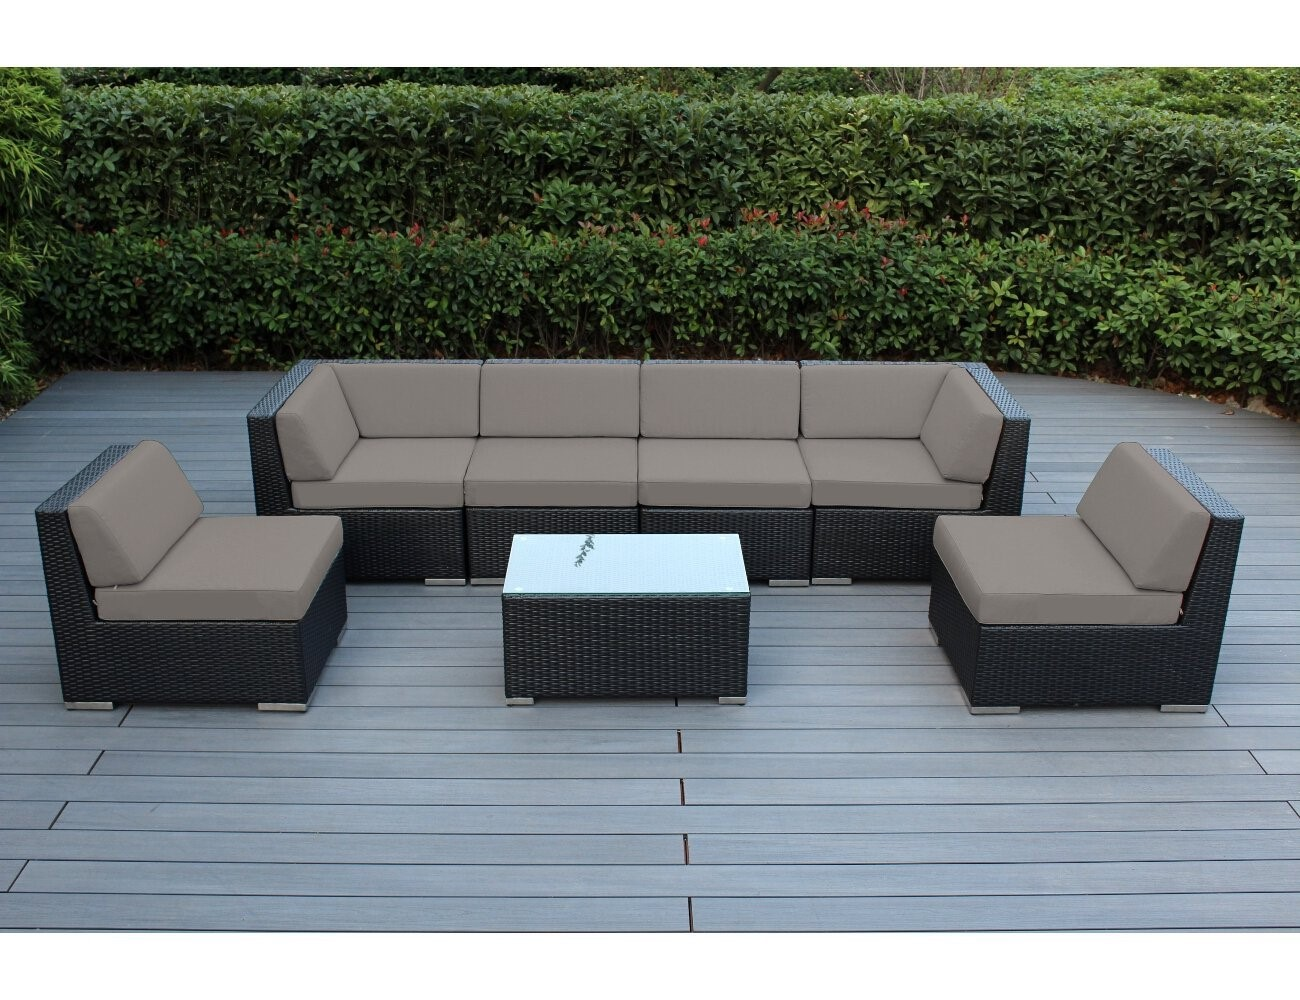 7 piece outdoor wicker patio furniture sectional for Outdoor furniture 7 piece